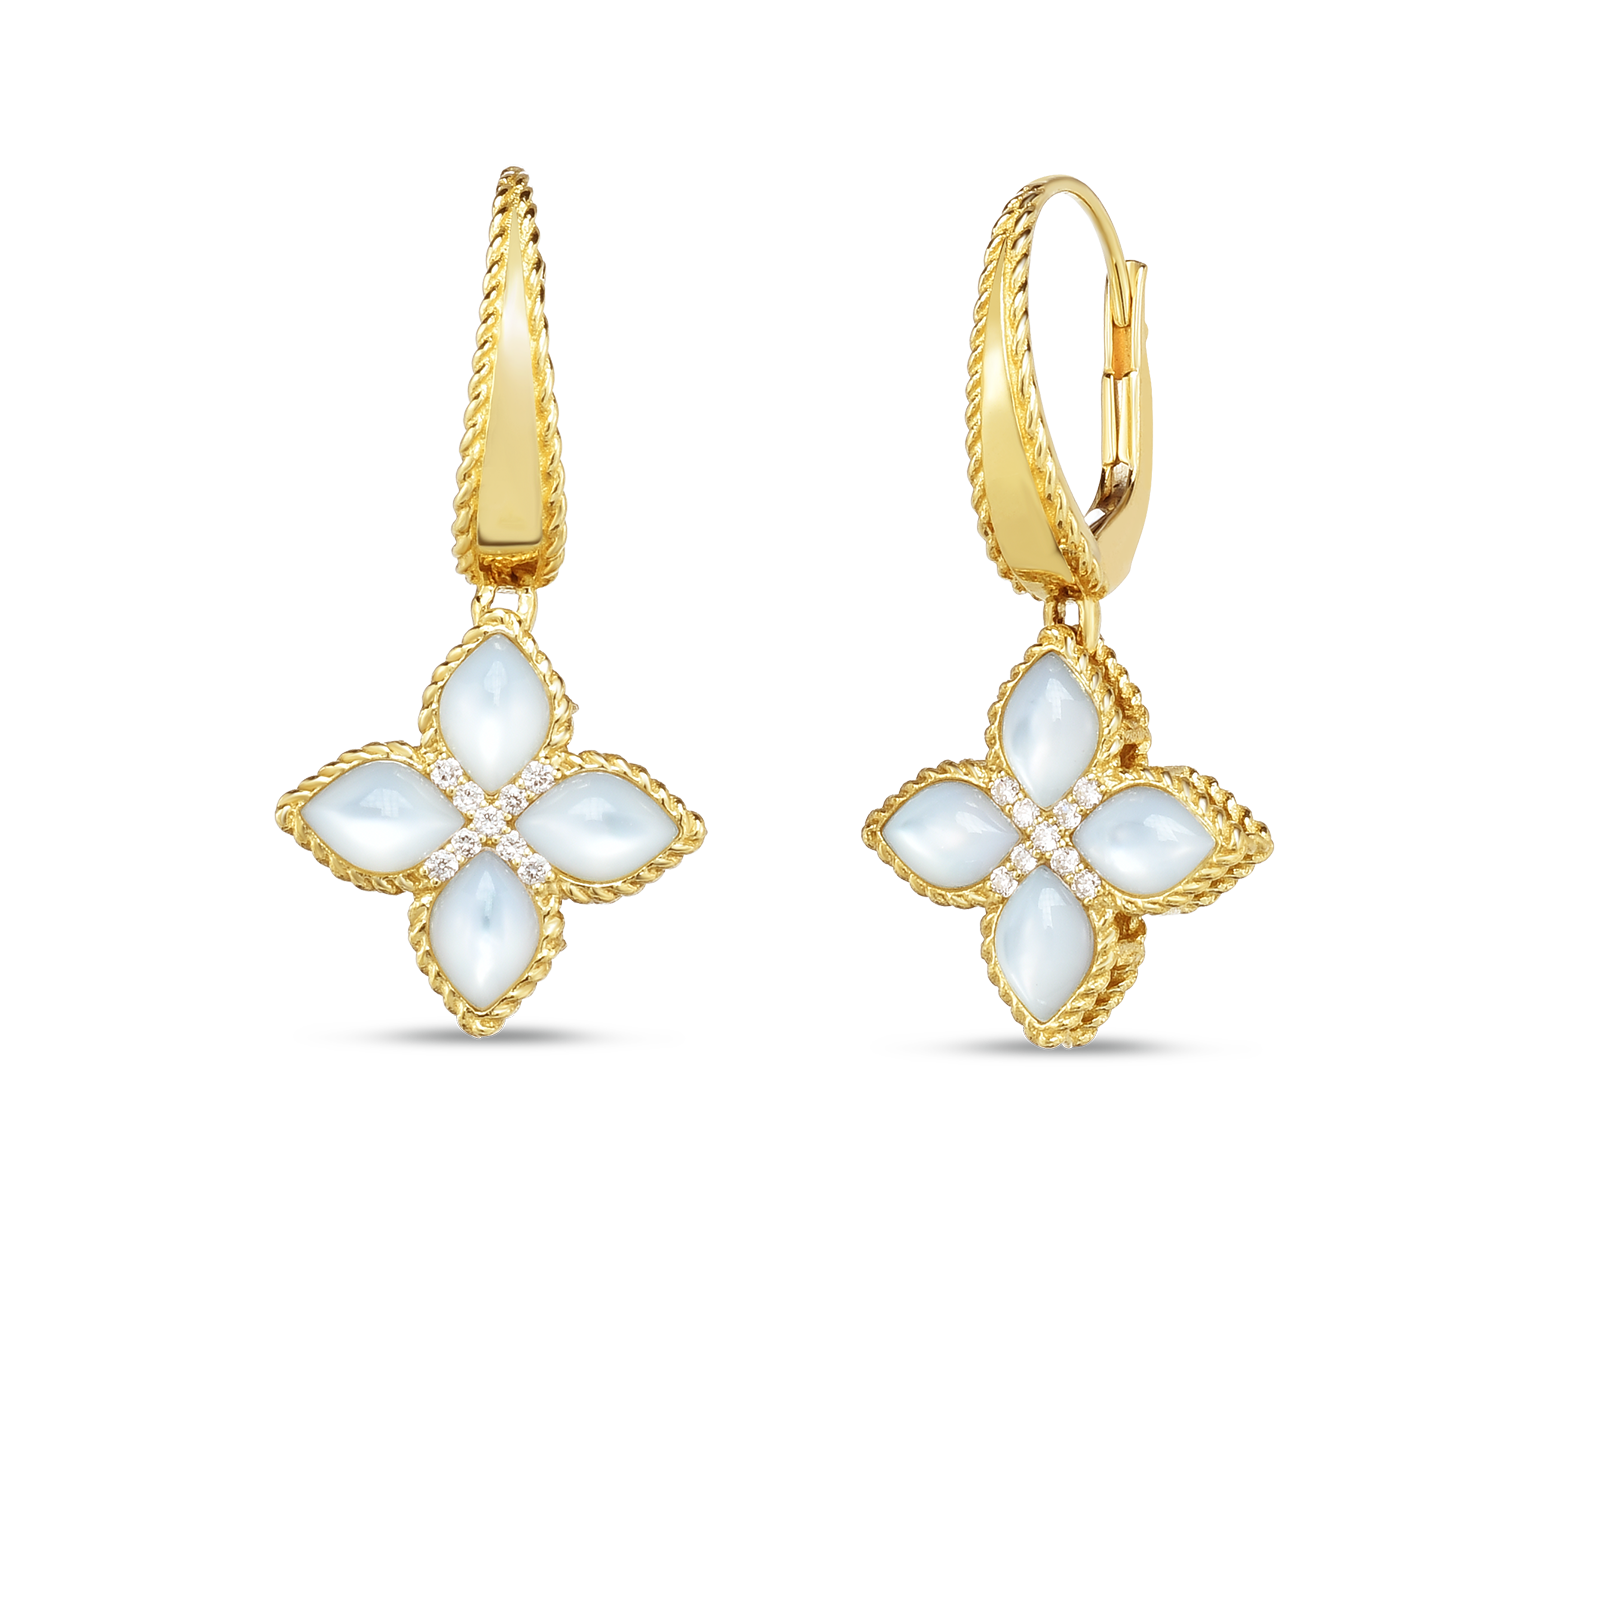 18k Gold, Dia & Mop Venetian Princess Medium Drop Earring